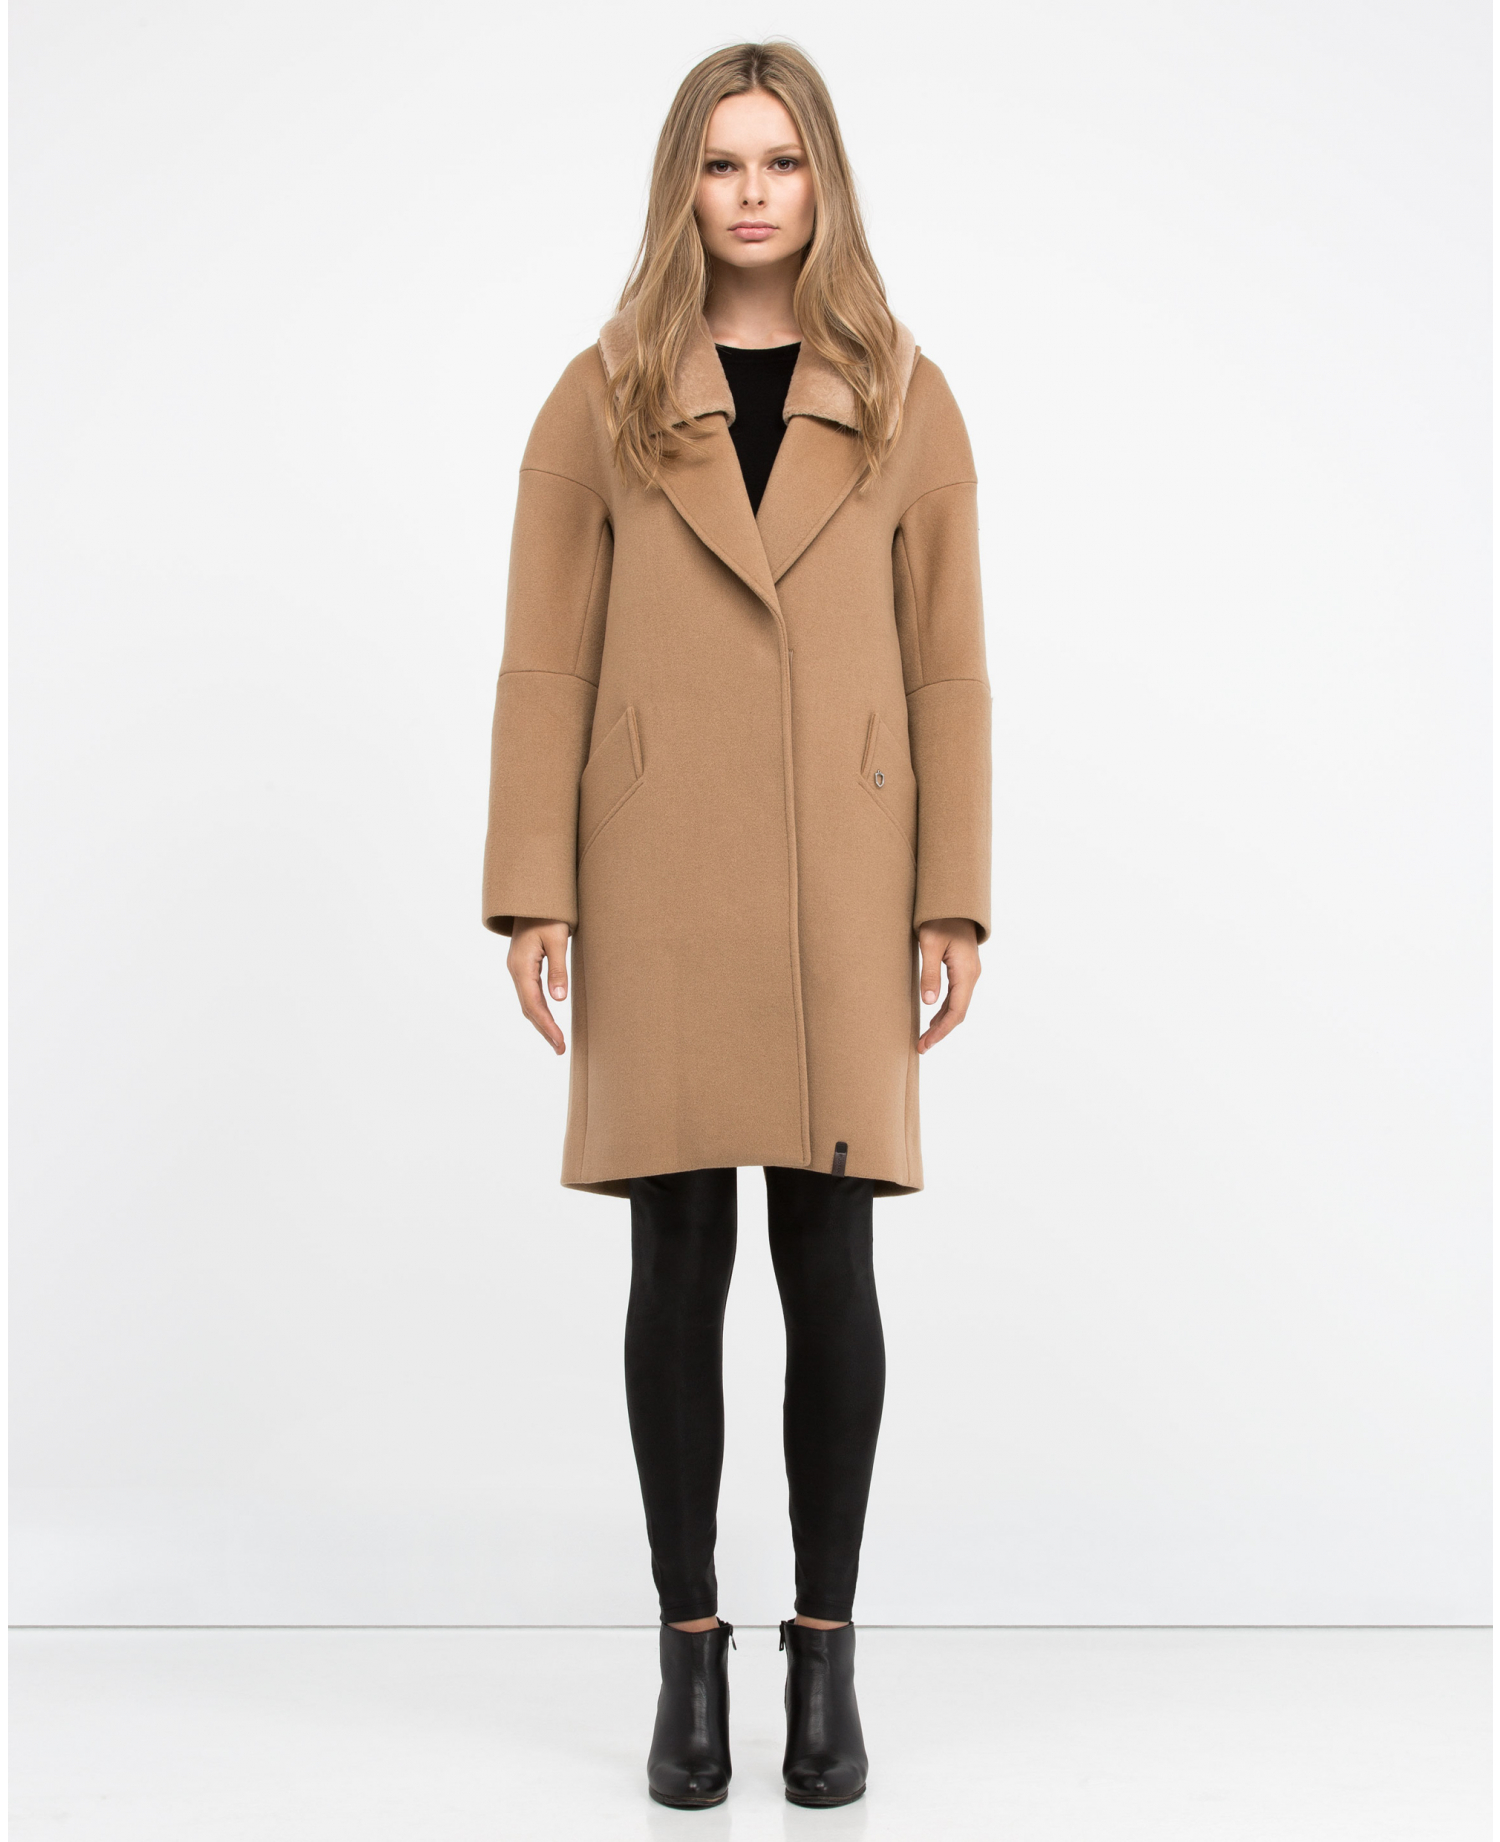 , 7 Must-Haves for Your Fall Wardrobe